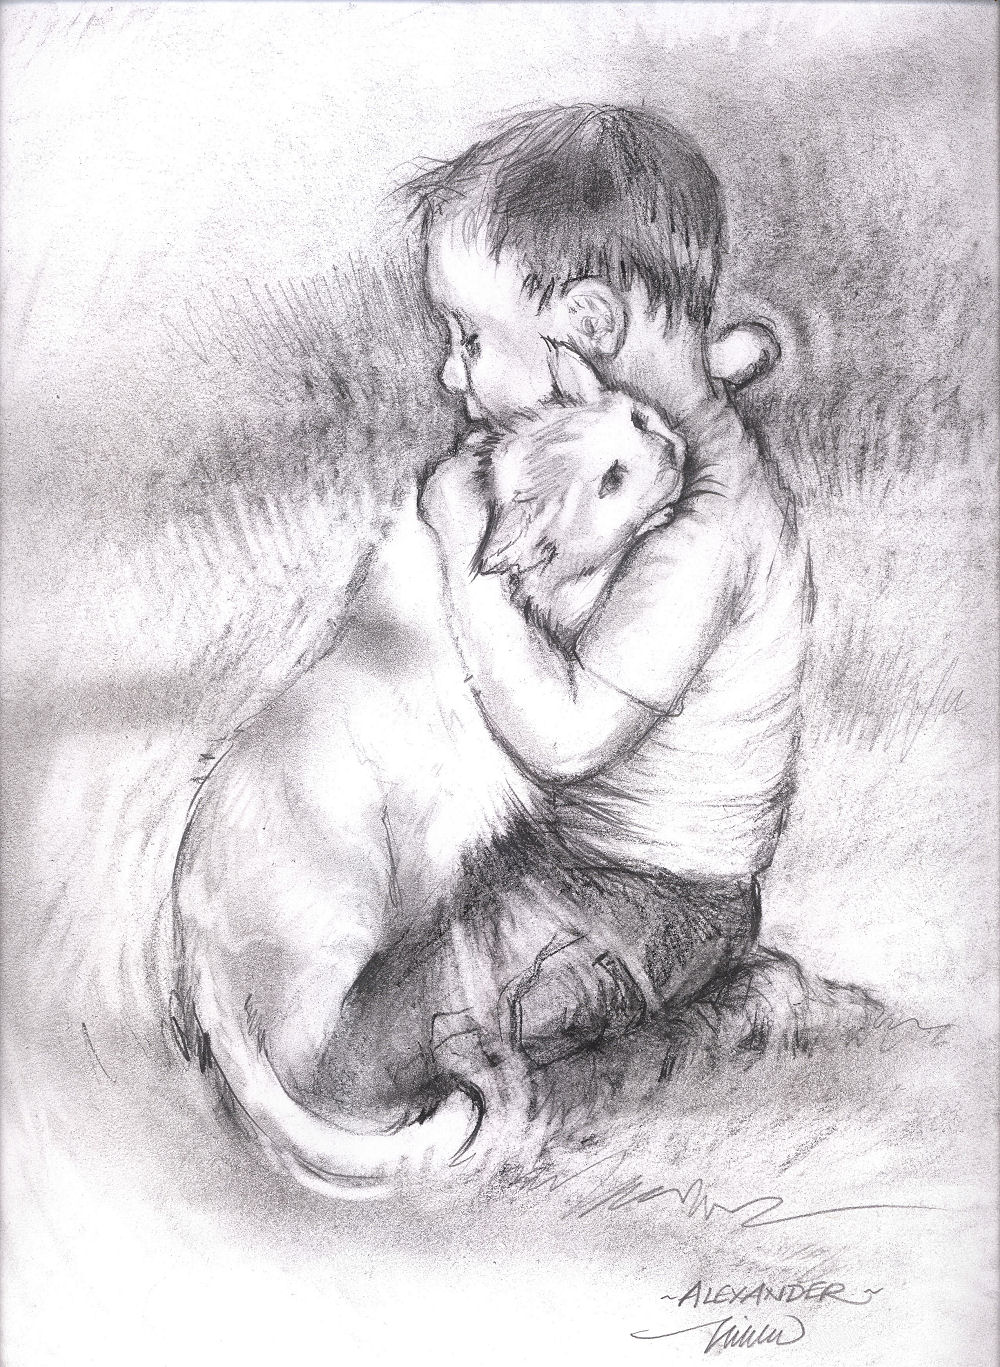 Alexander's Cat, 11 x 14 inches graphite on paper